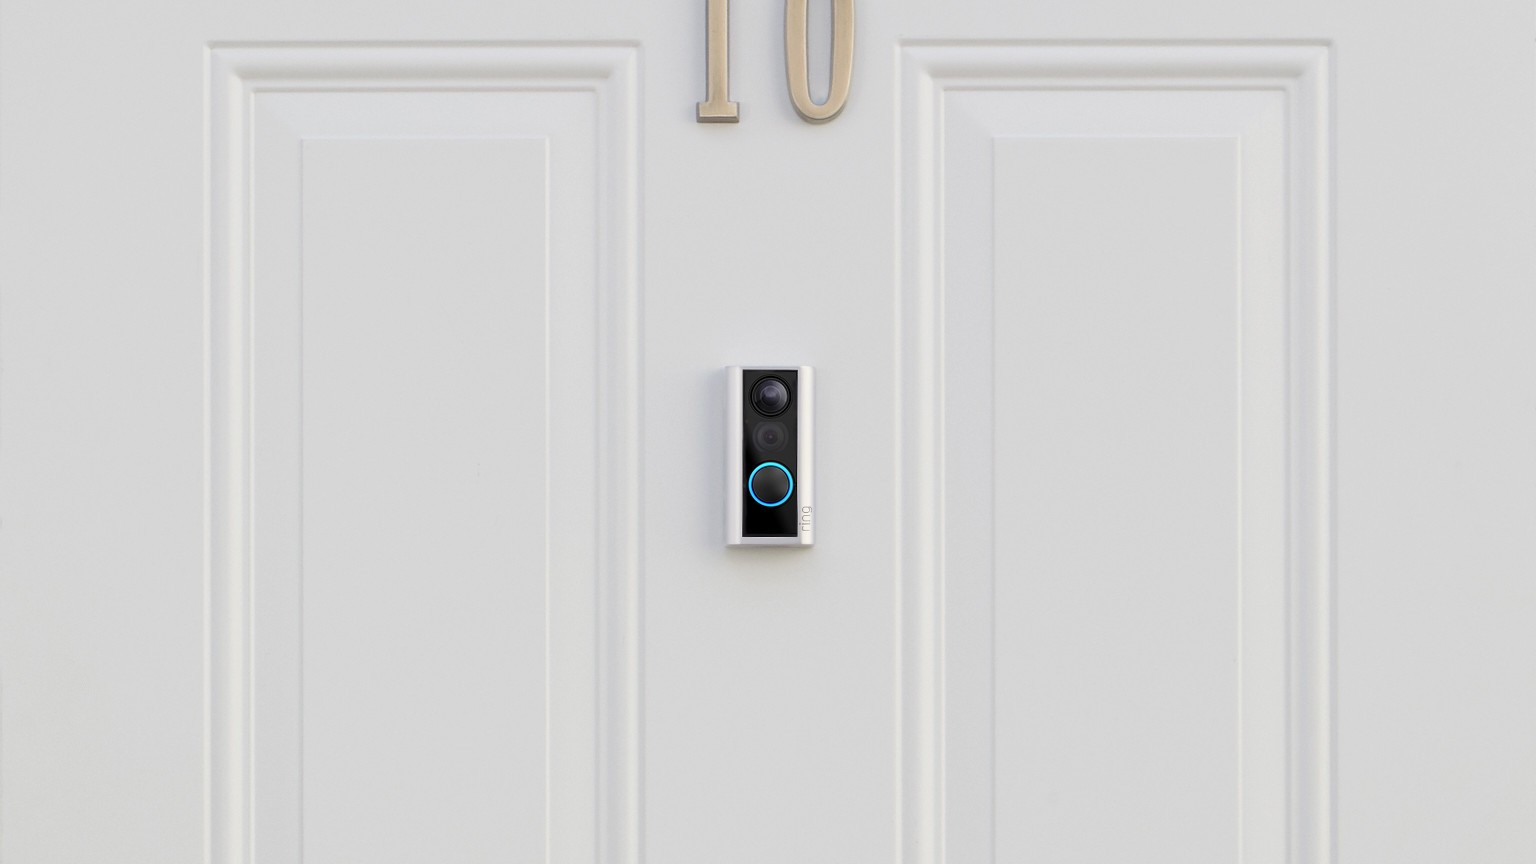 Ring announce the new, easier to install video doorbell